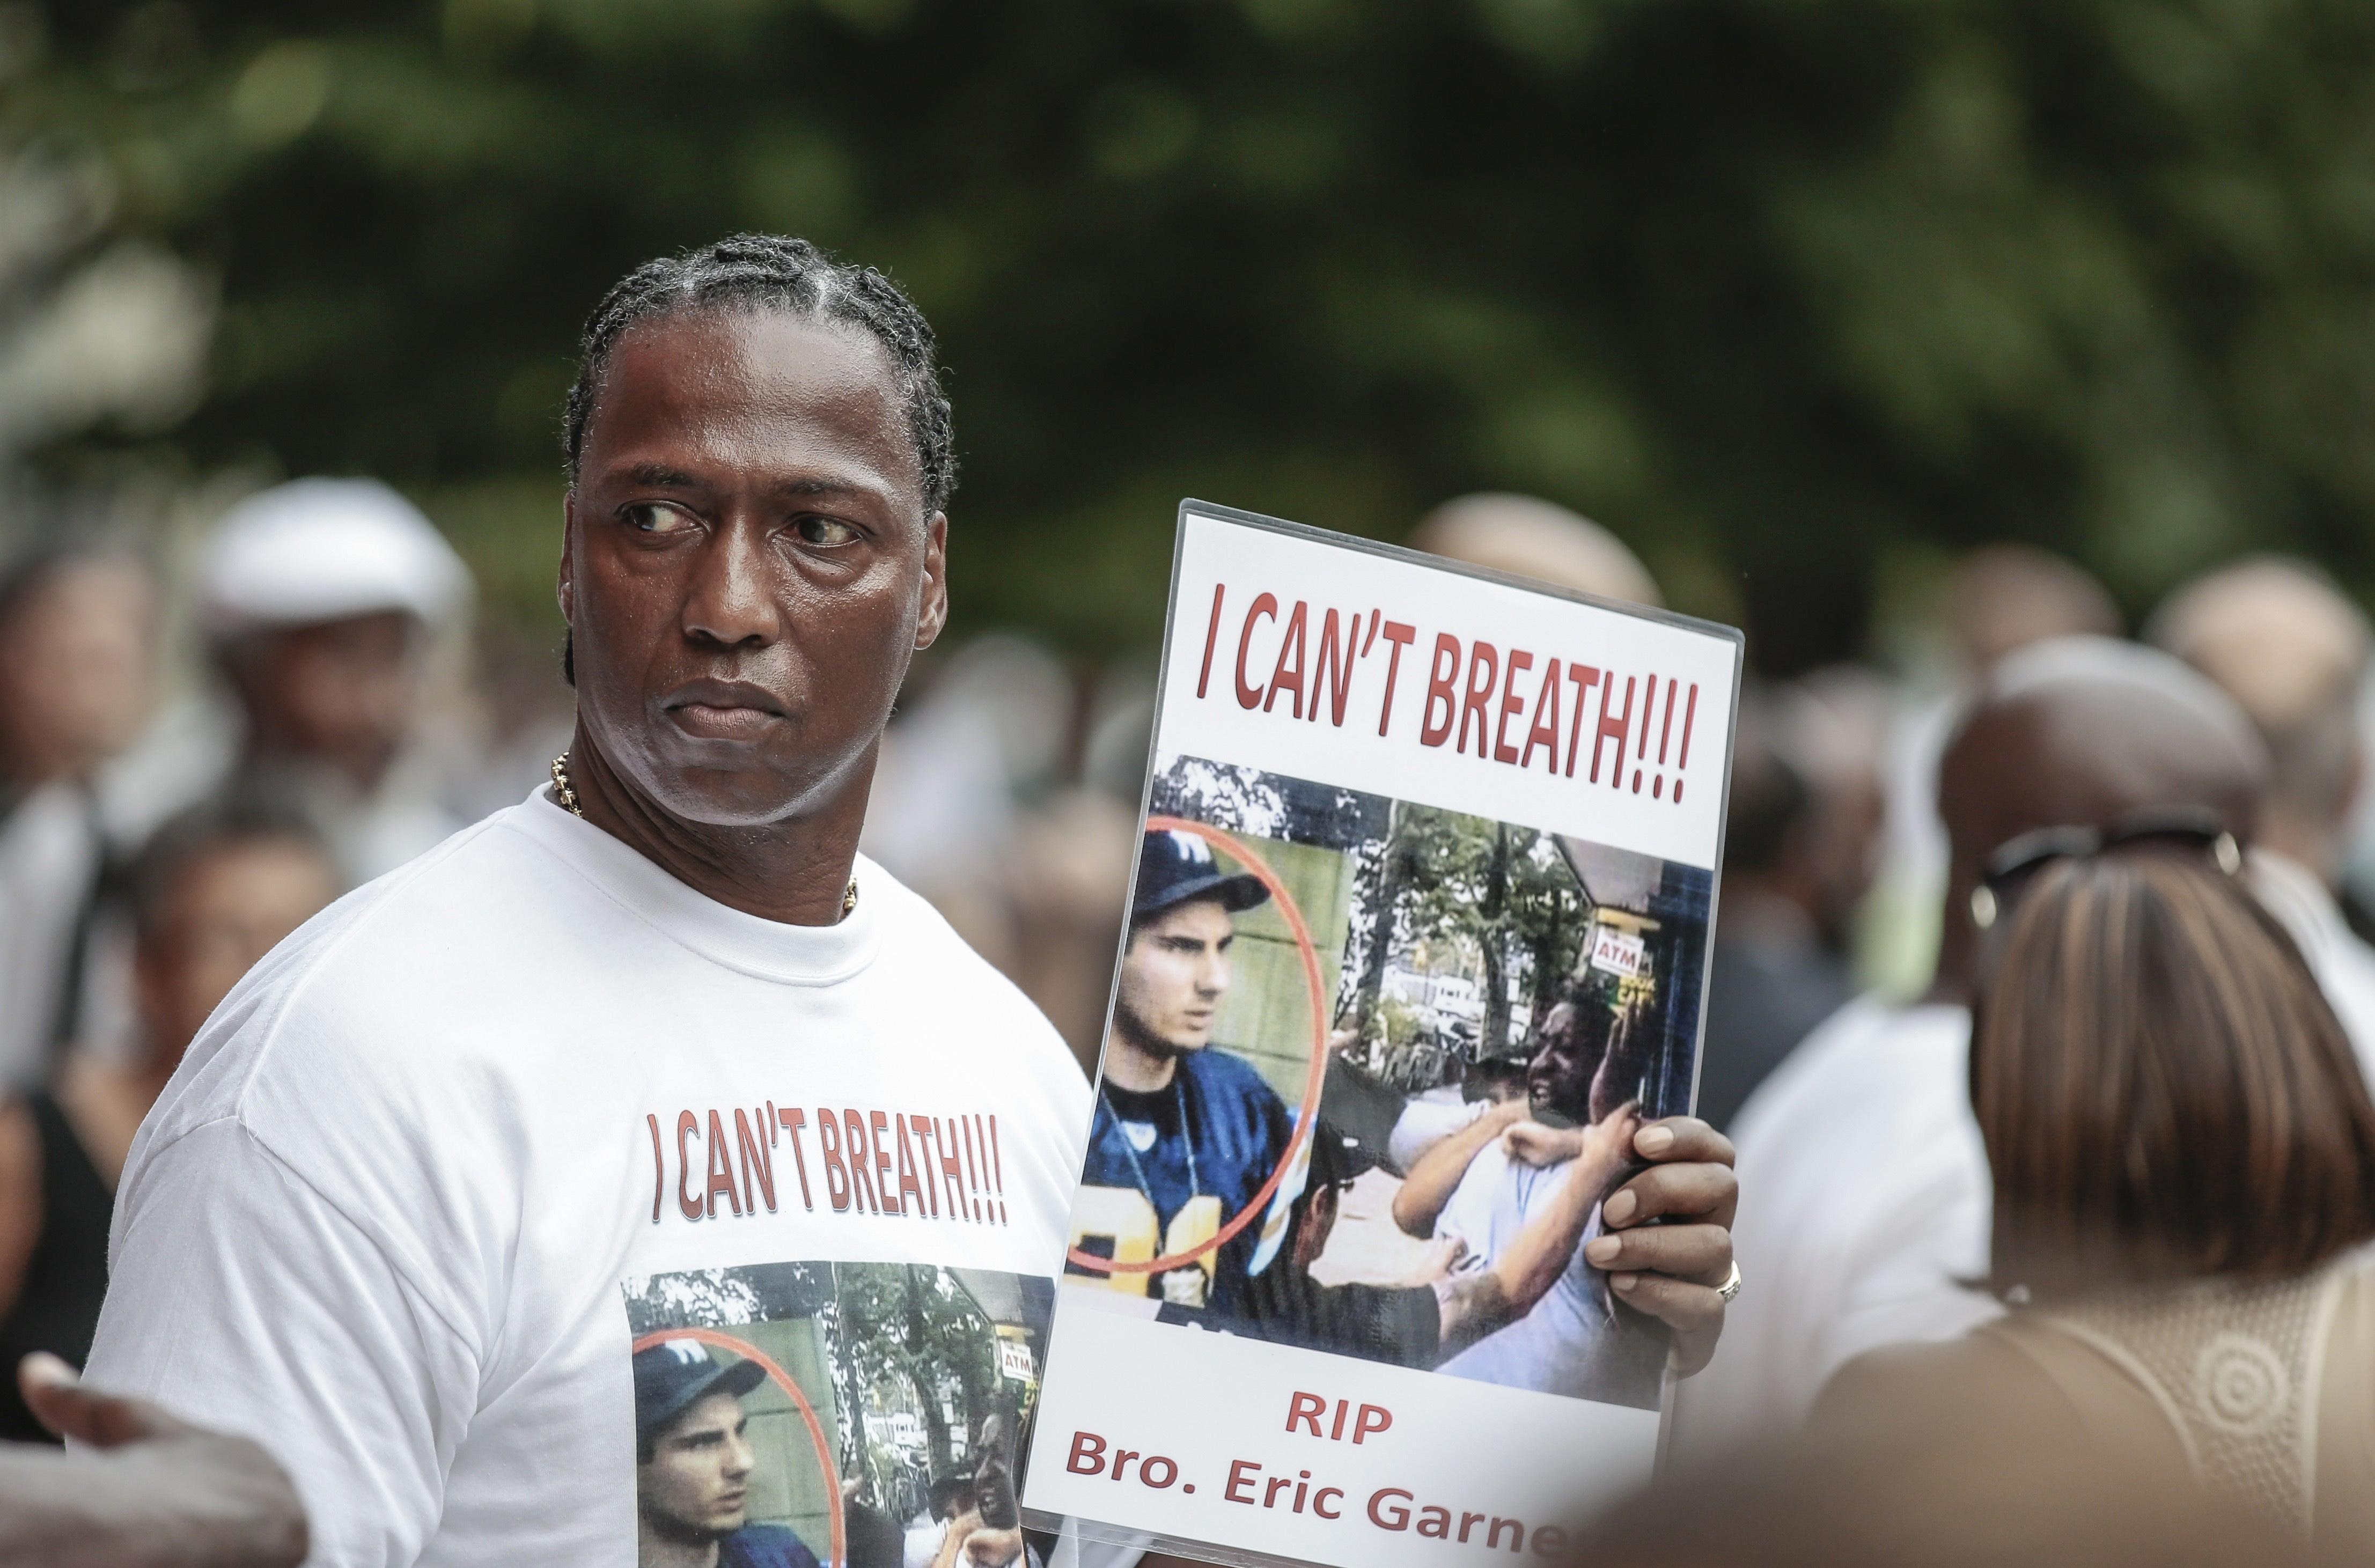 People and relatives attend the funeral ceremony of Eric Garner who died after NYPD cops put him in a banned chokehold.